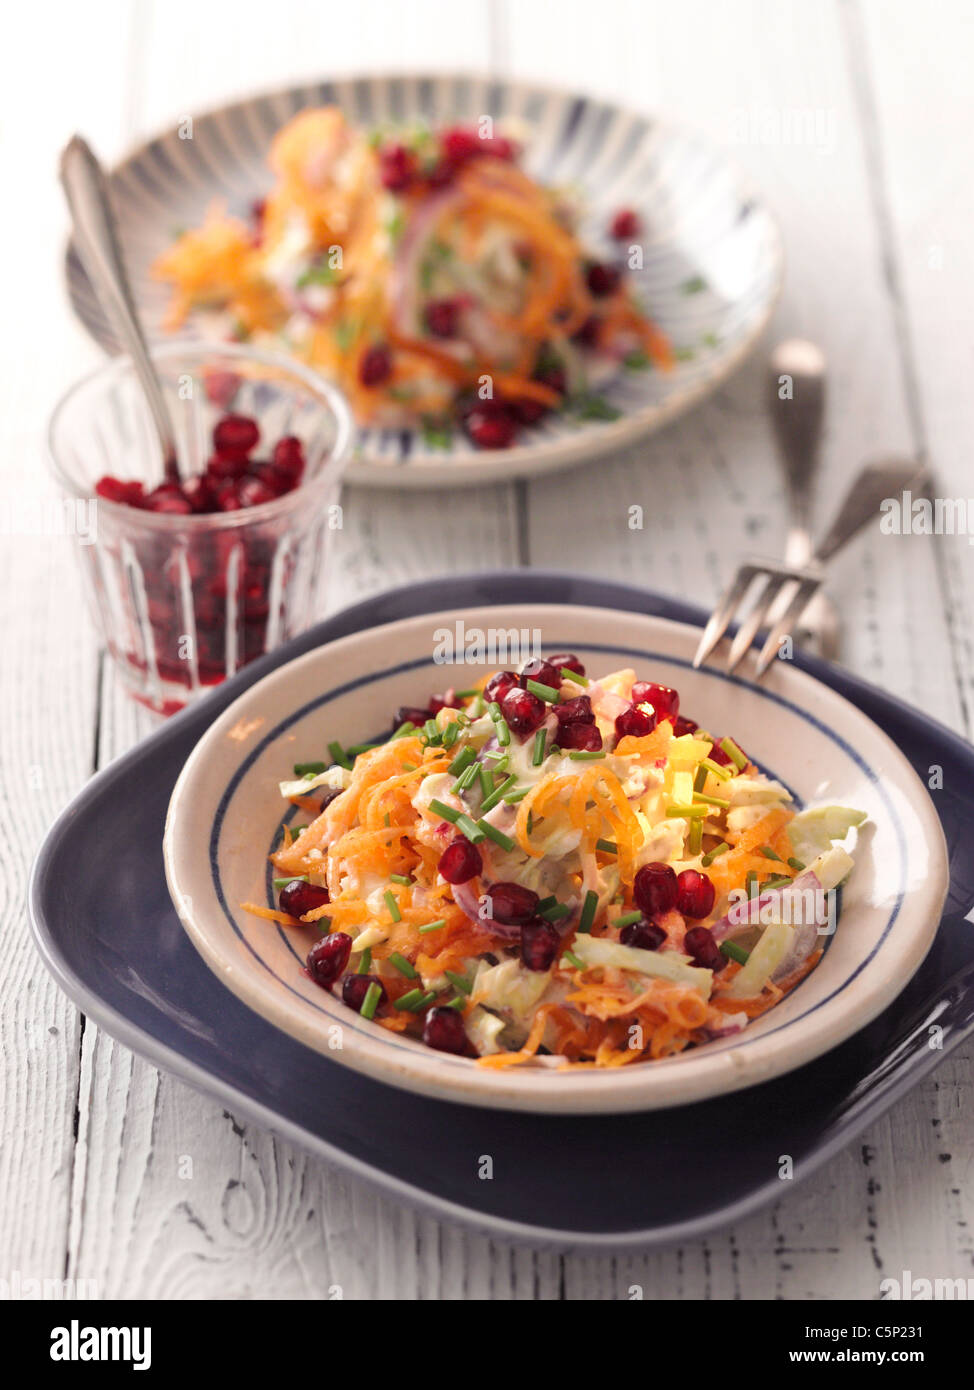 Salad of pumkin with cabbage and pomegranate - Stock Image